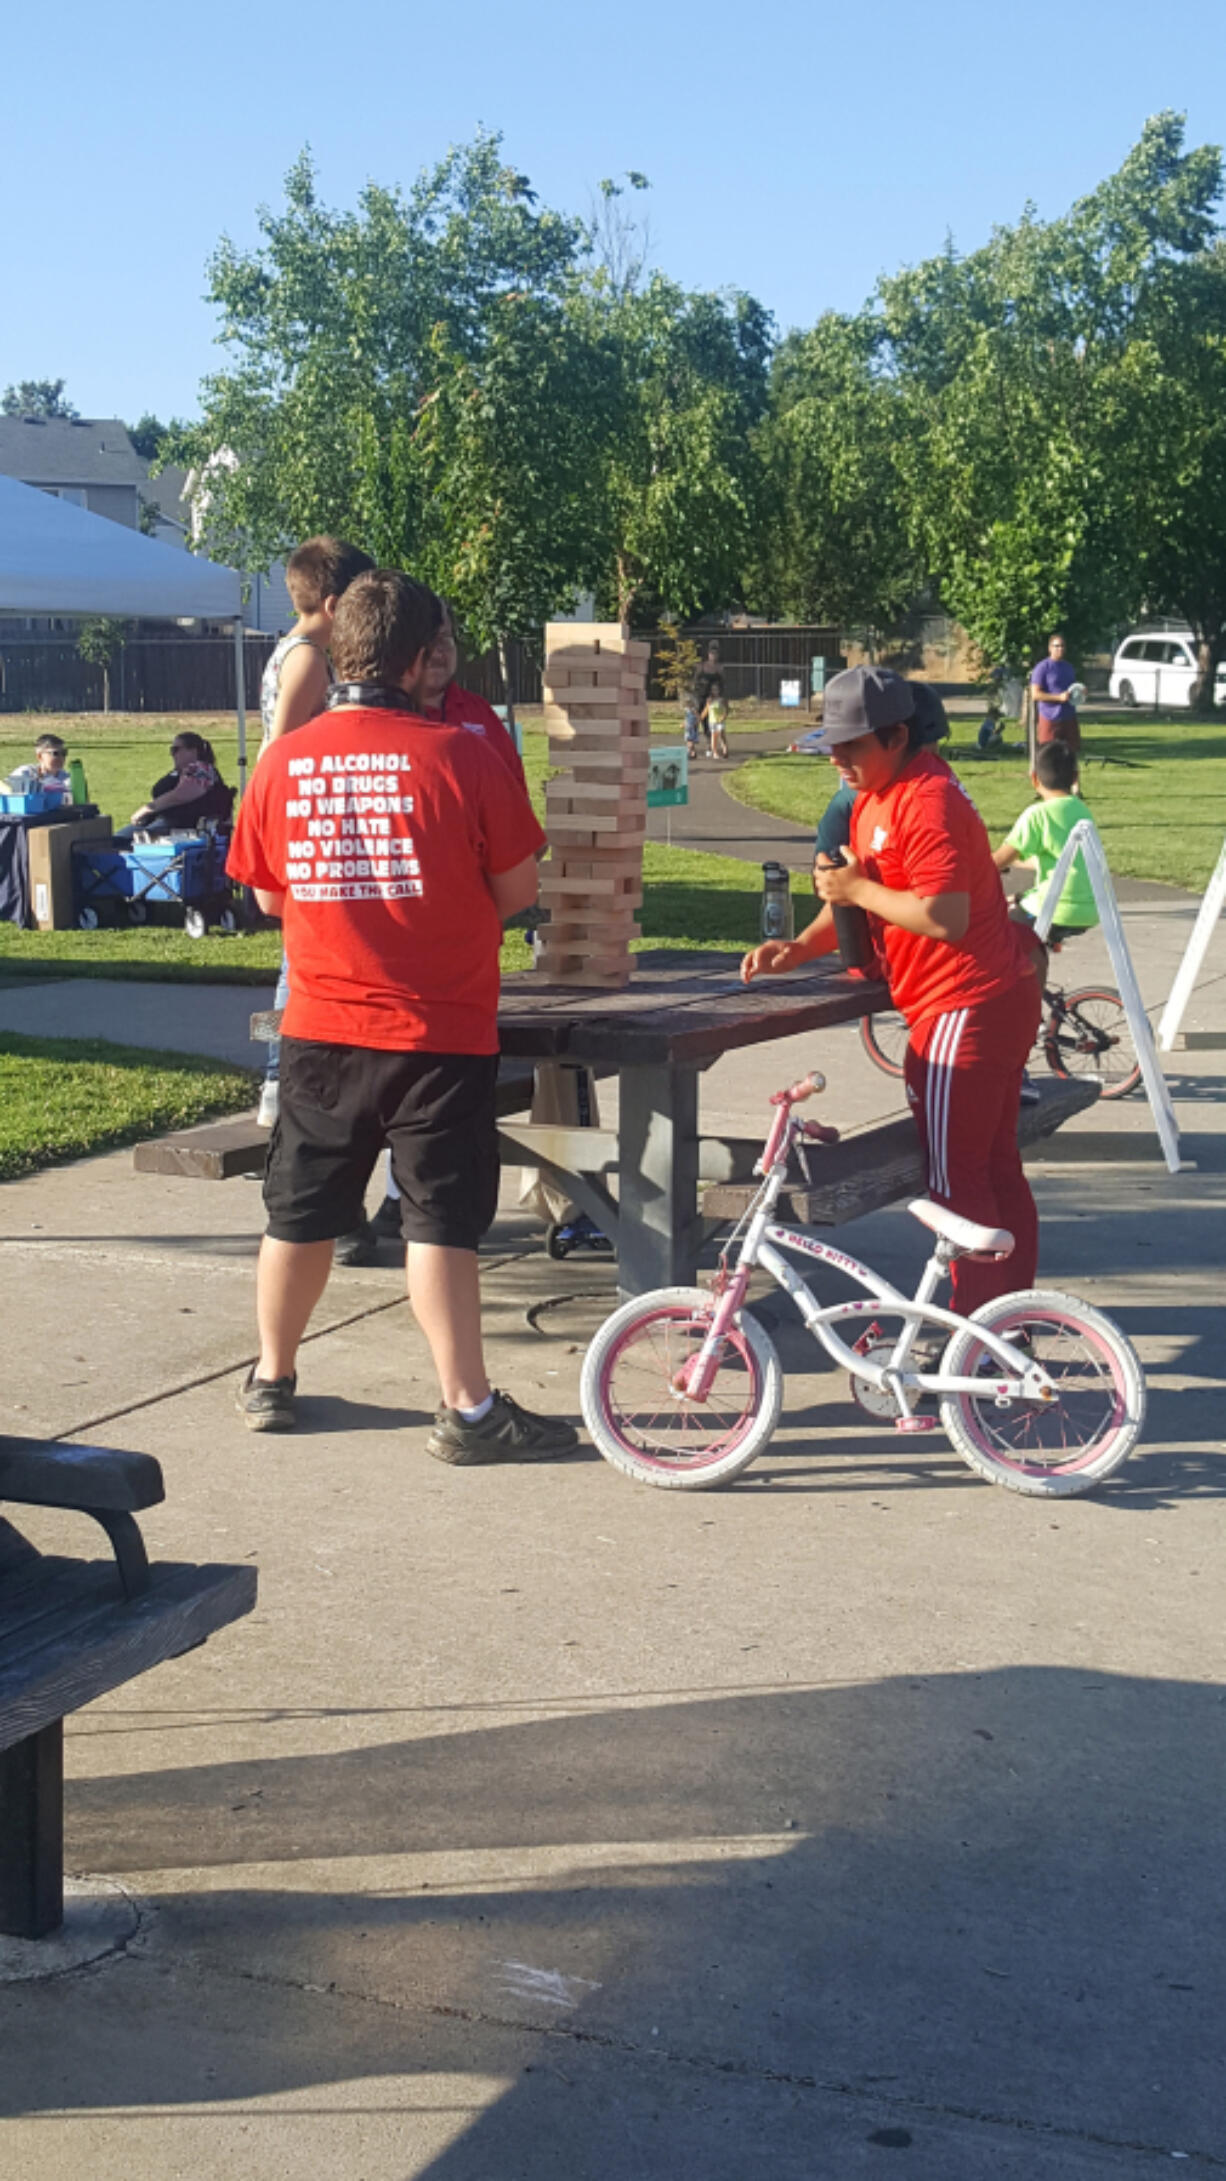 CARTER PARK: Party in the Parks, a program by Vancouver Parks and Recreation, kicked off on July 6 at Brickyard Park.